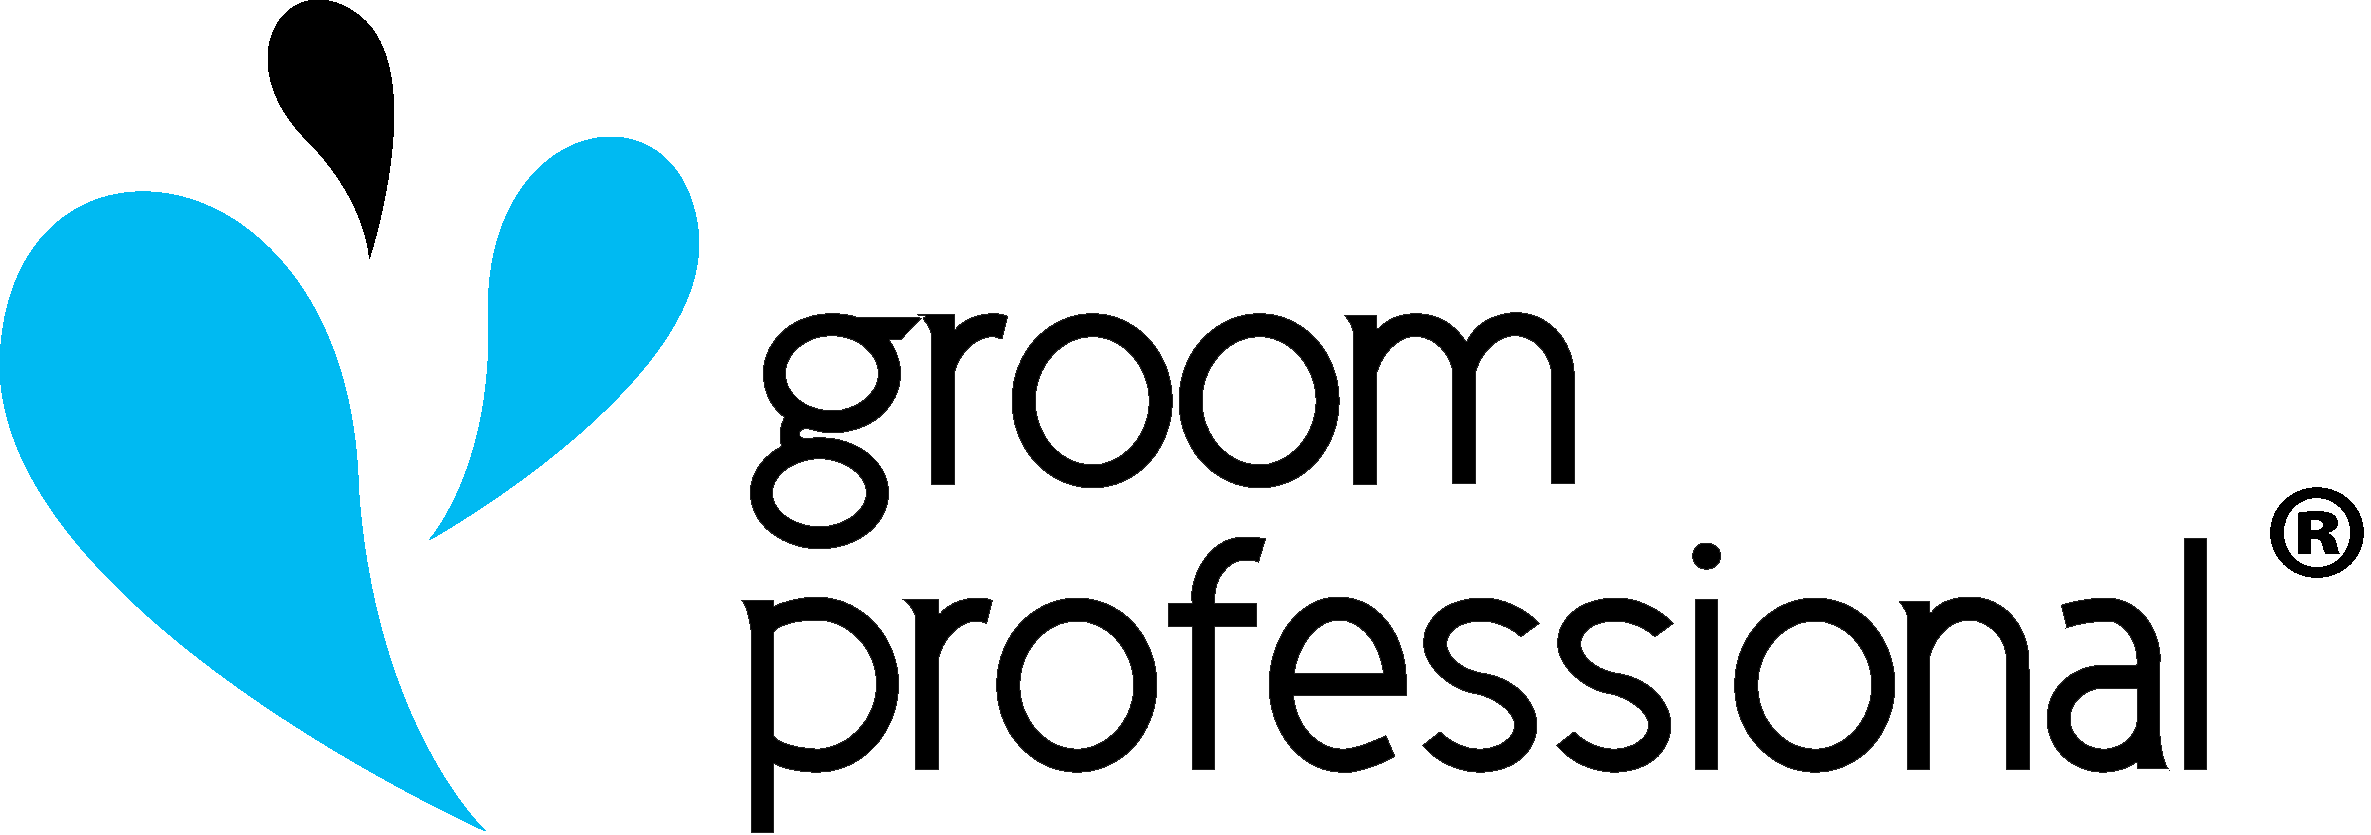 groom professional logo